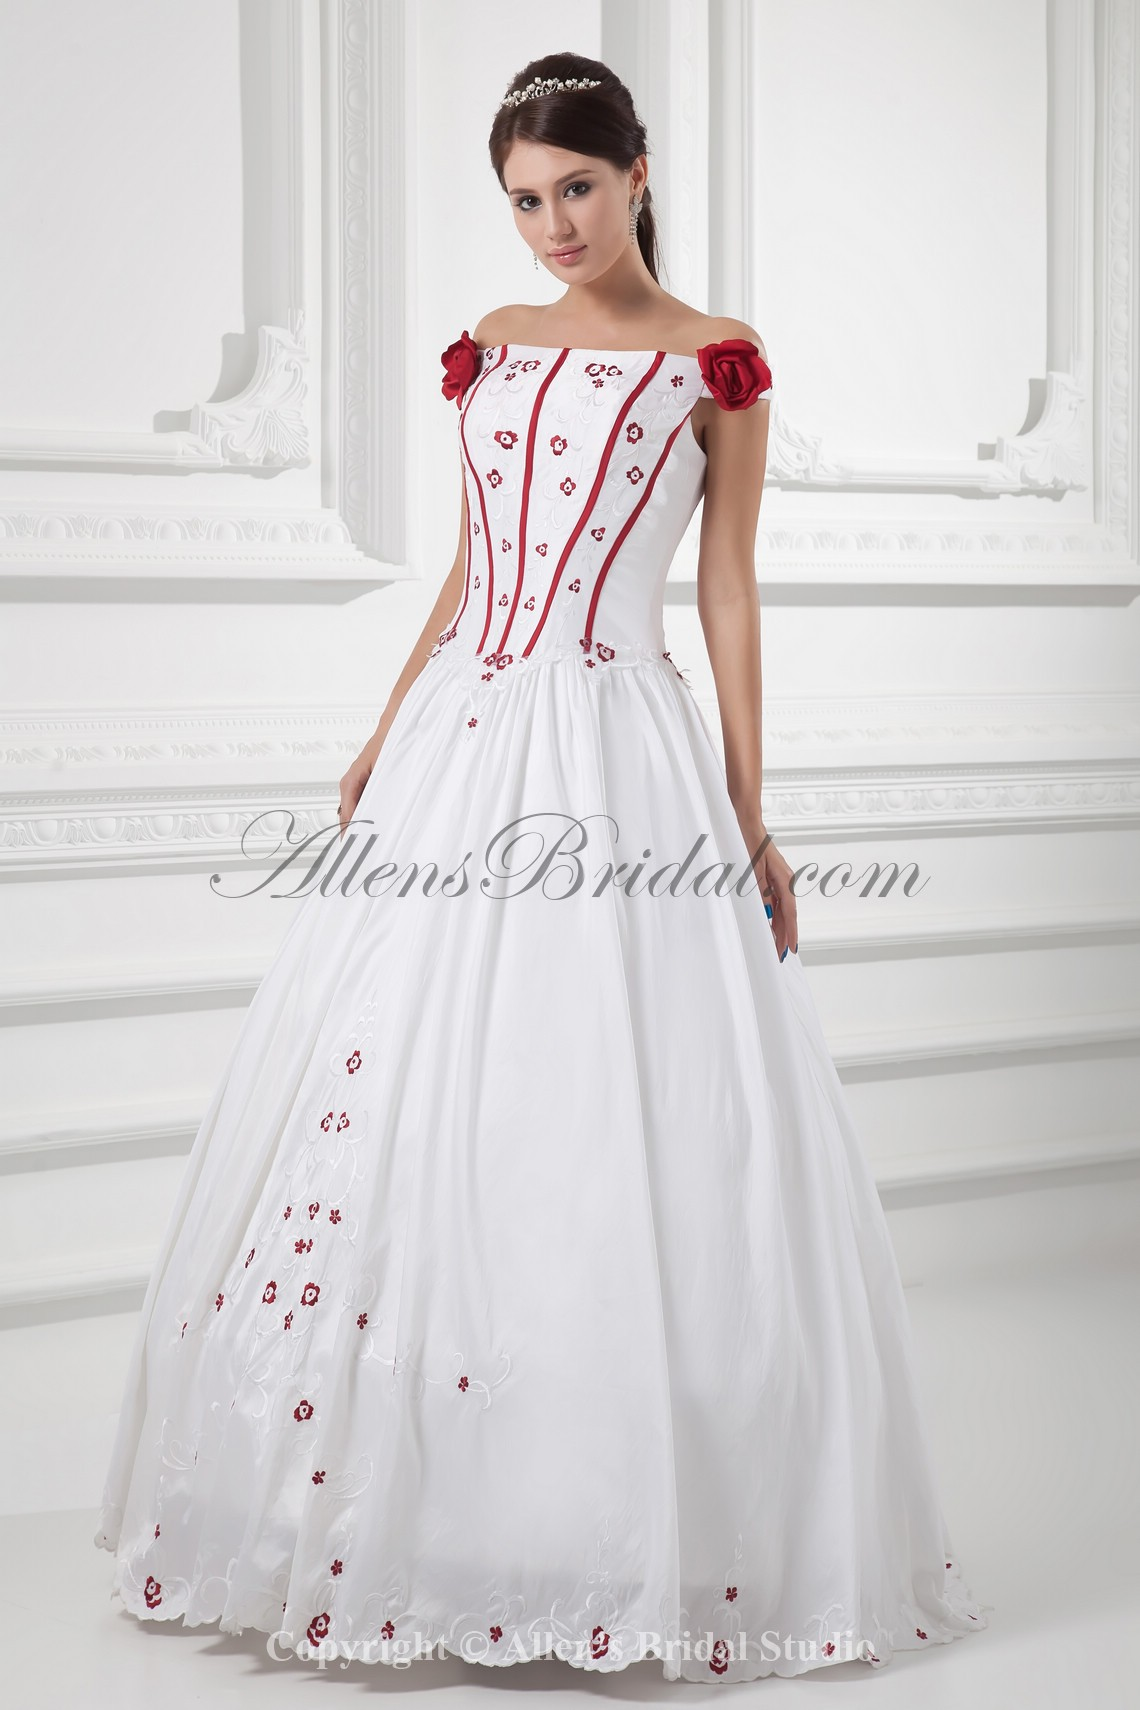 /994-7966/satin-off-the-shoulder-ball-gown-floor-length-embroidered-and-hand-made-flowers-wedding-dress.jpg